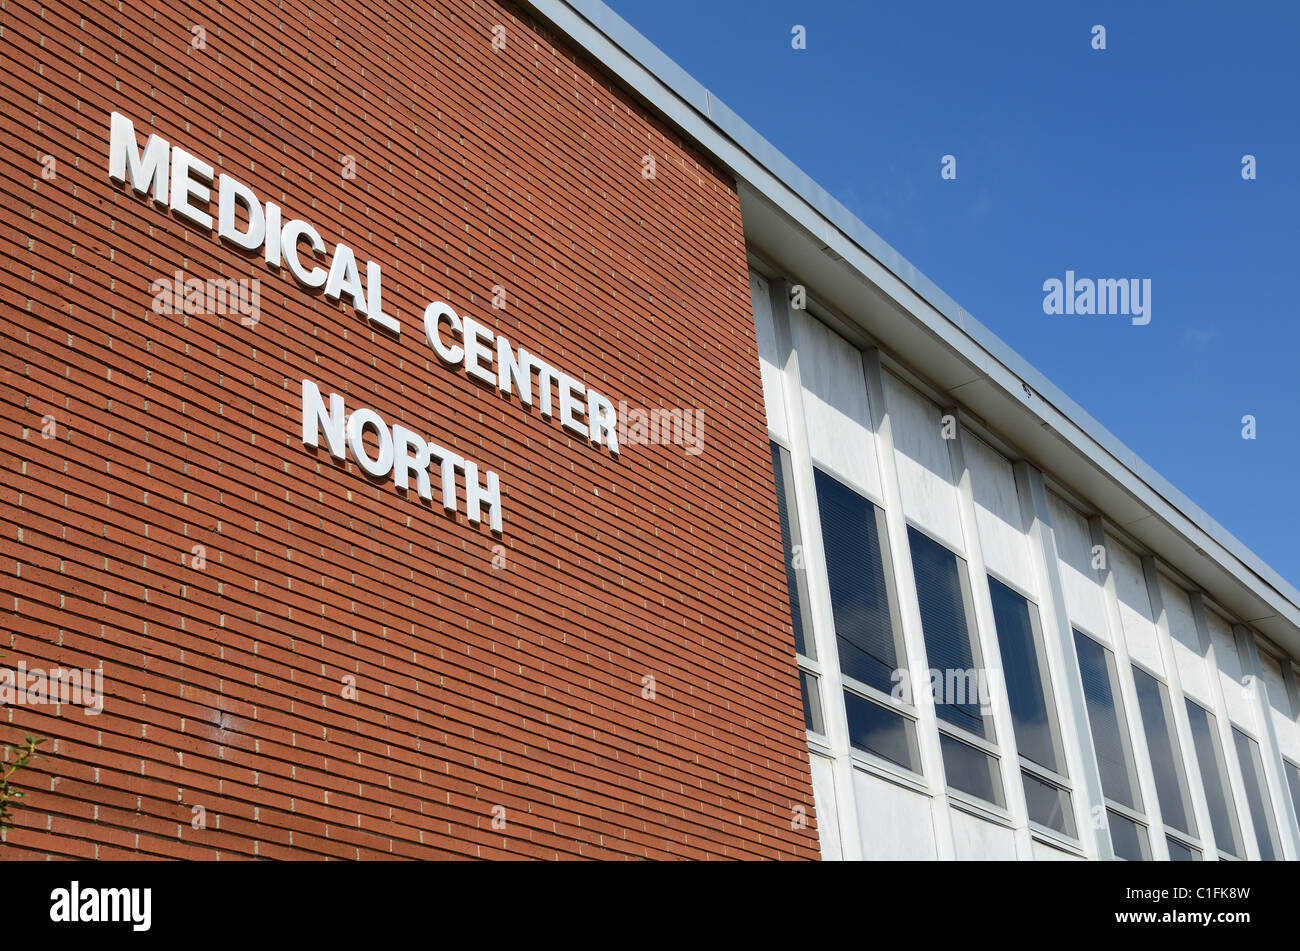 North wing of a medical center - Stock Image